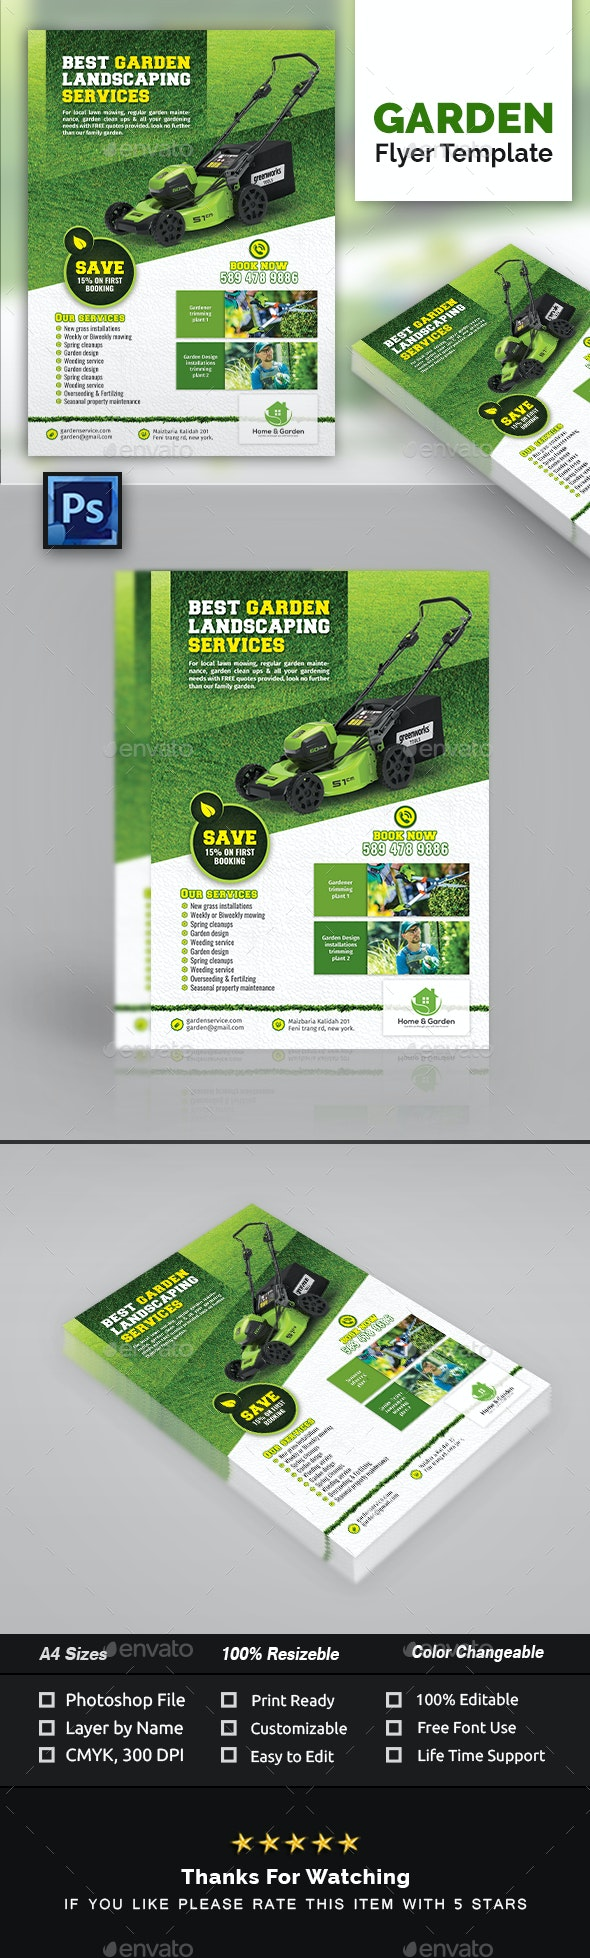 Garden Landscape Flyer Template - Commerce Flyers